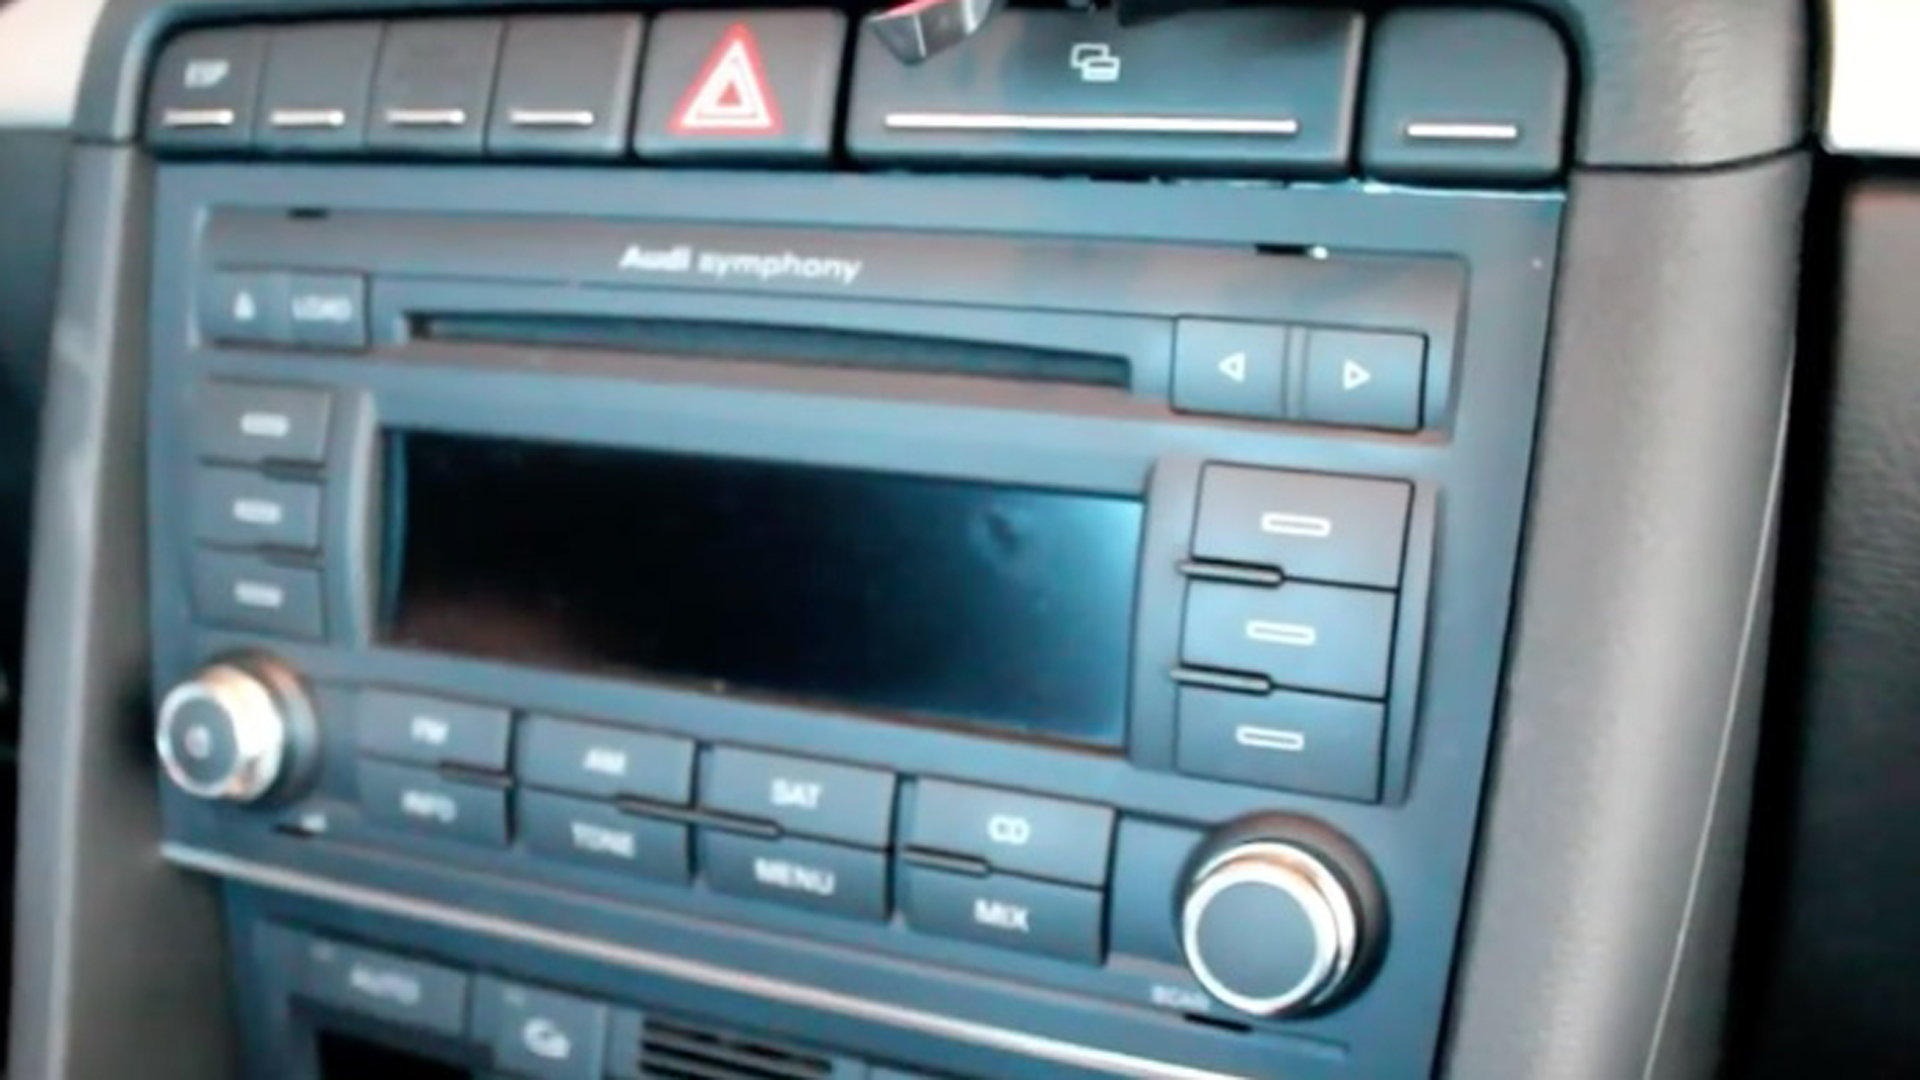 2007 audi a4 symphony wiring radio audi a4 b7 how to install car stereo with bluetooth audiworld  audi a4 b7 how to install car stereo